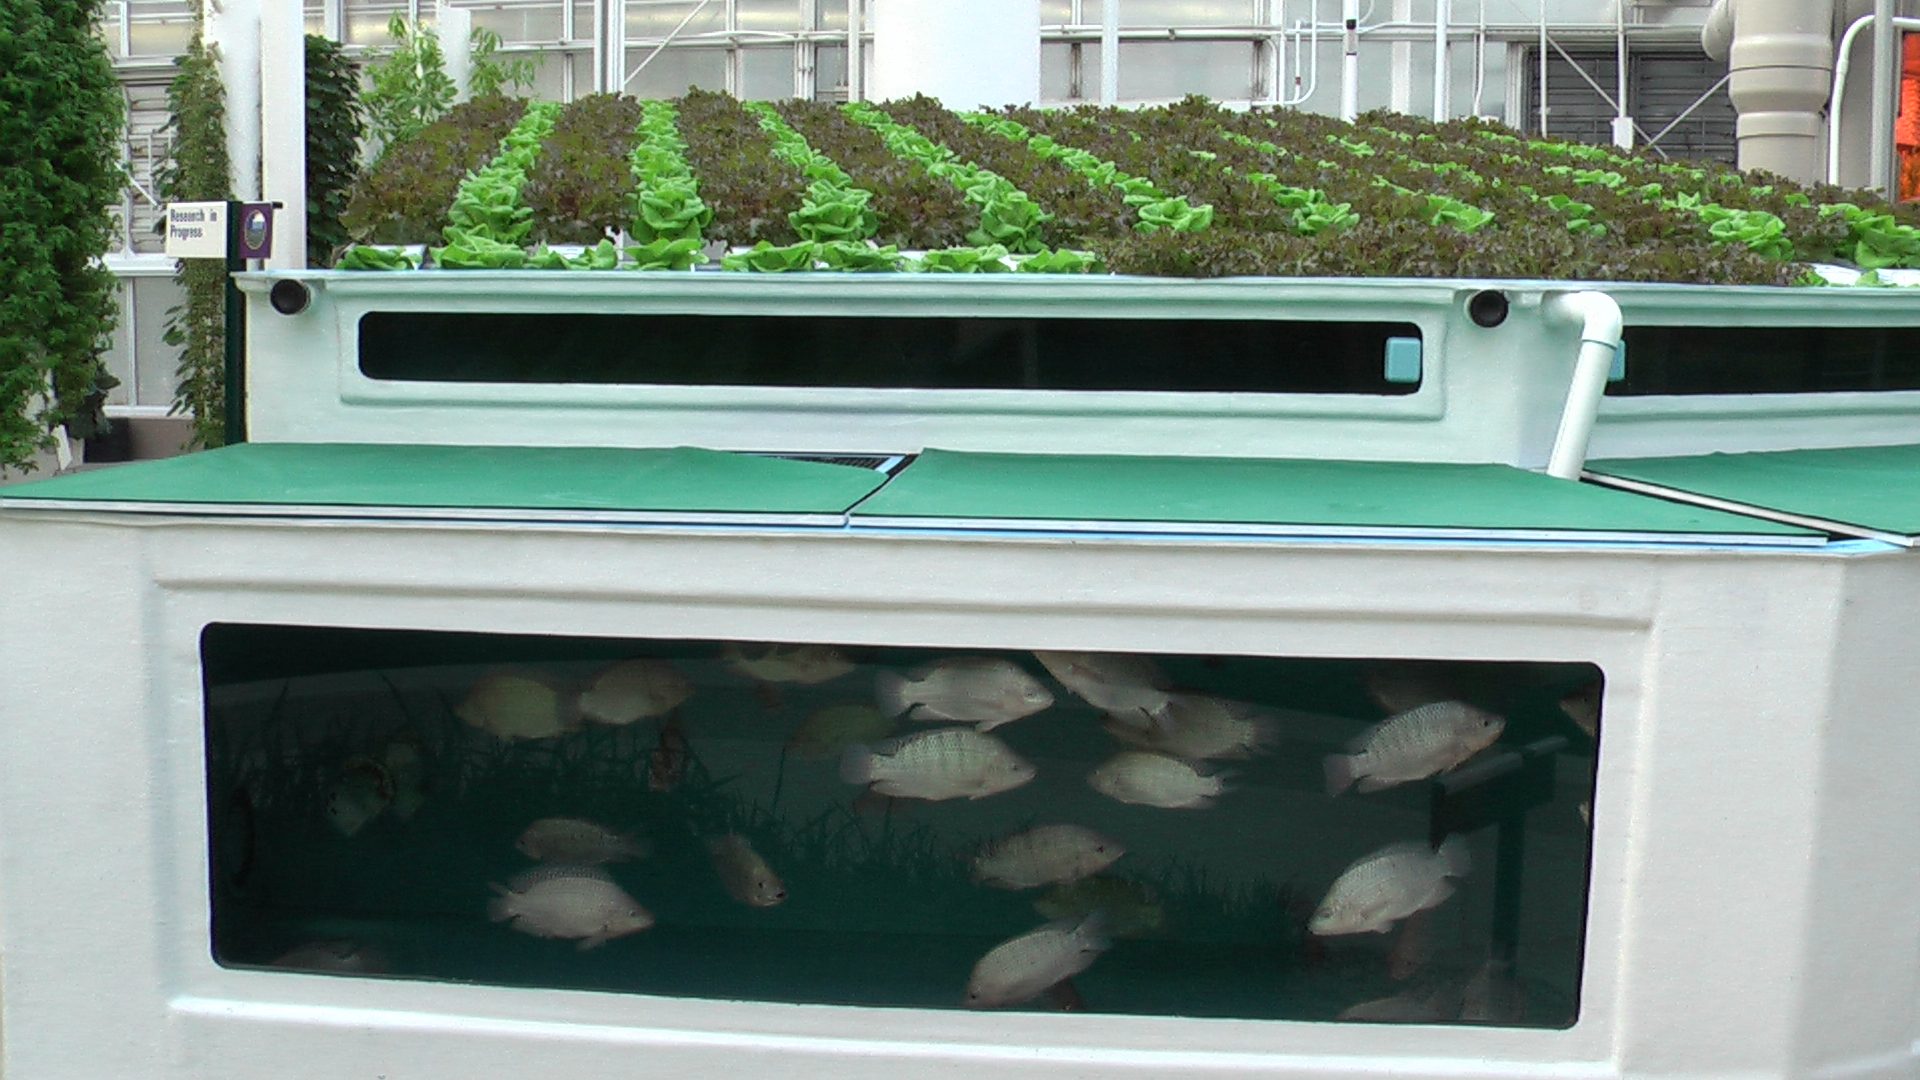 The land the epcot online community of today for Aquaponics fish for sale